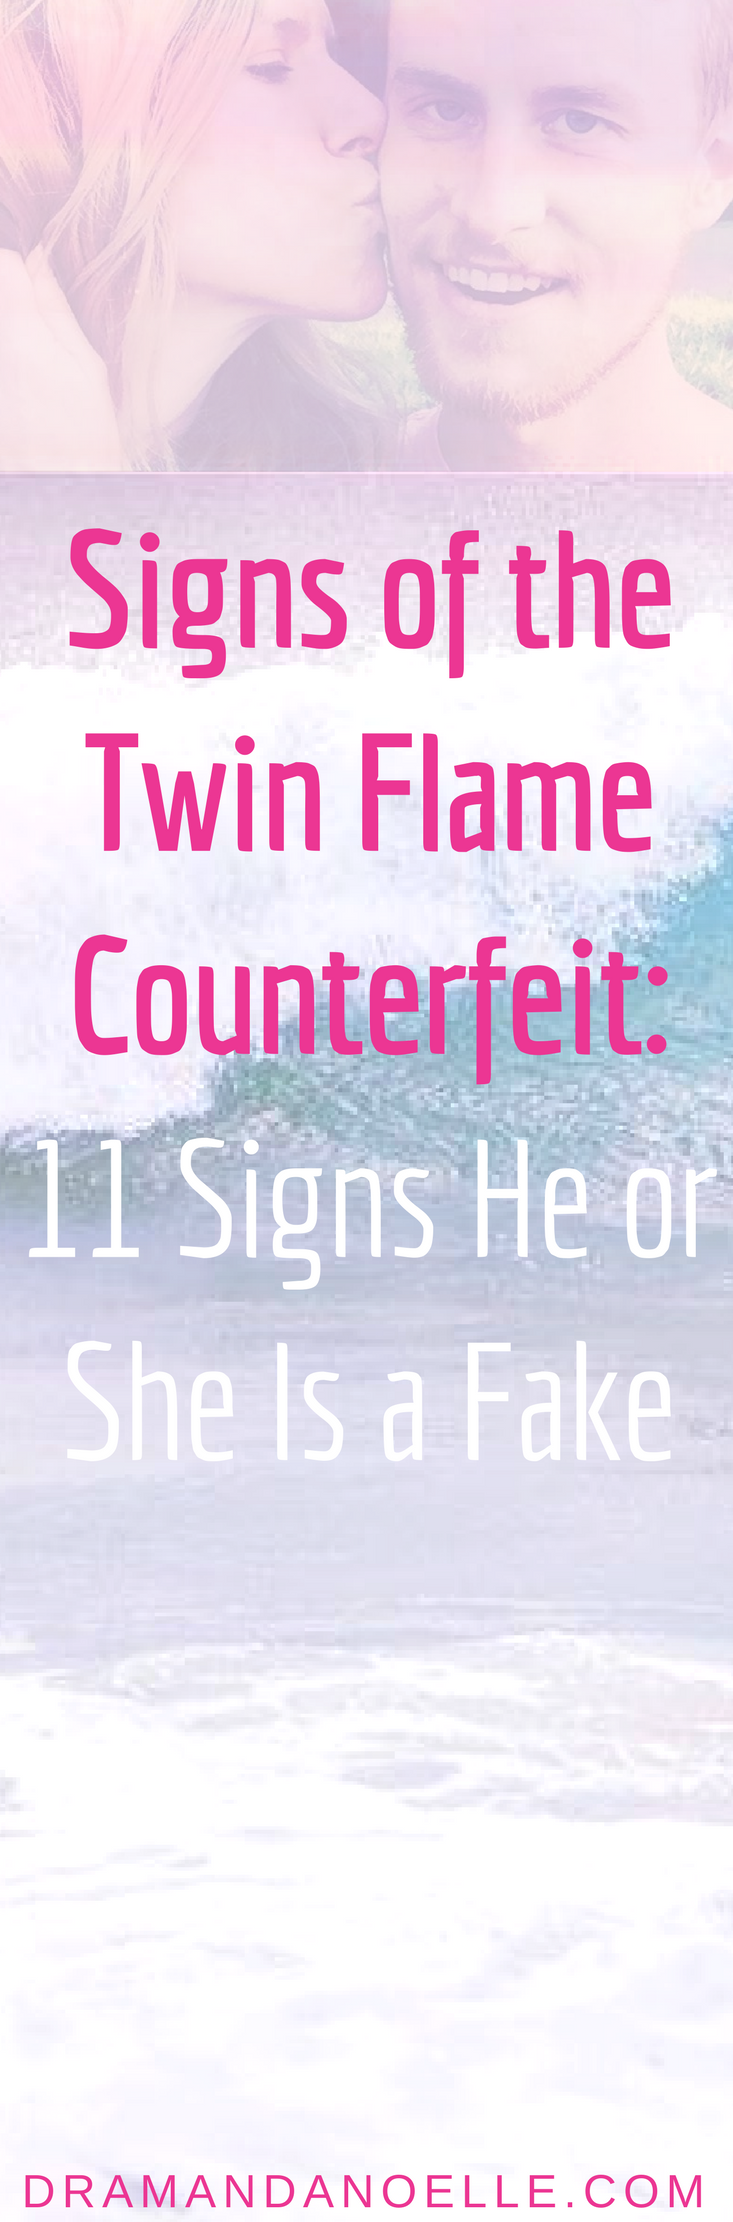 Signs of the Twin Flame Counterfeit: 11 Signs He or She Is a